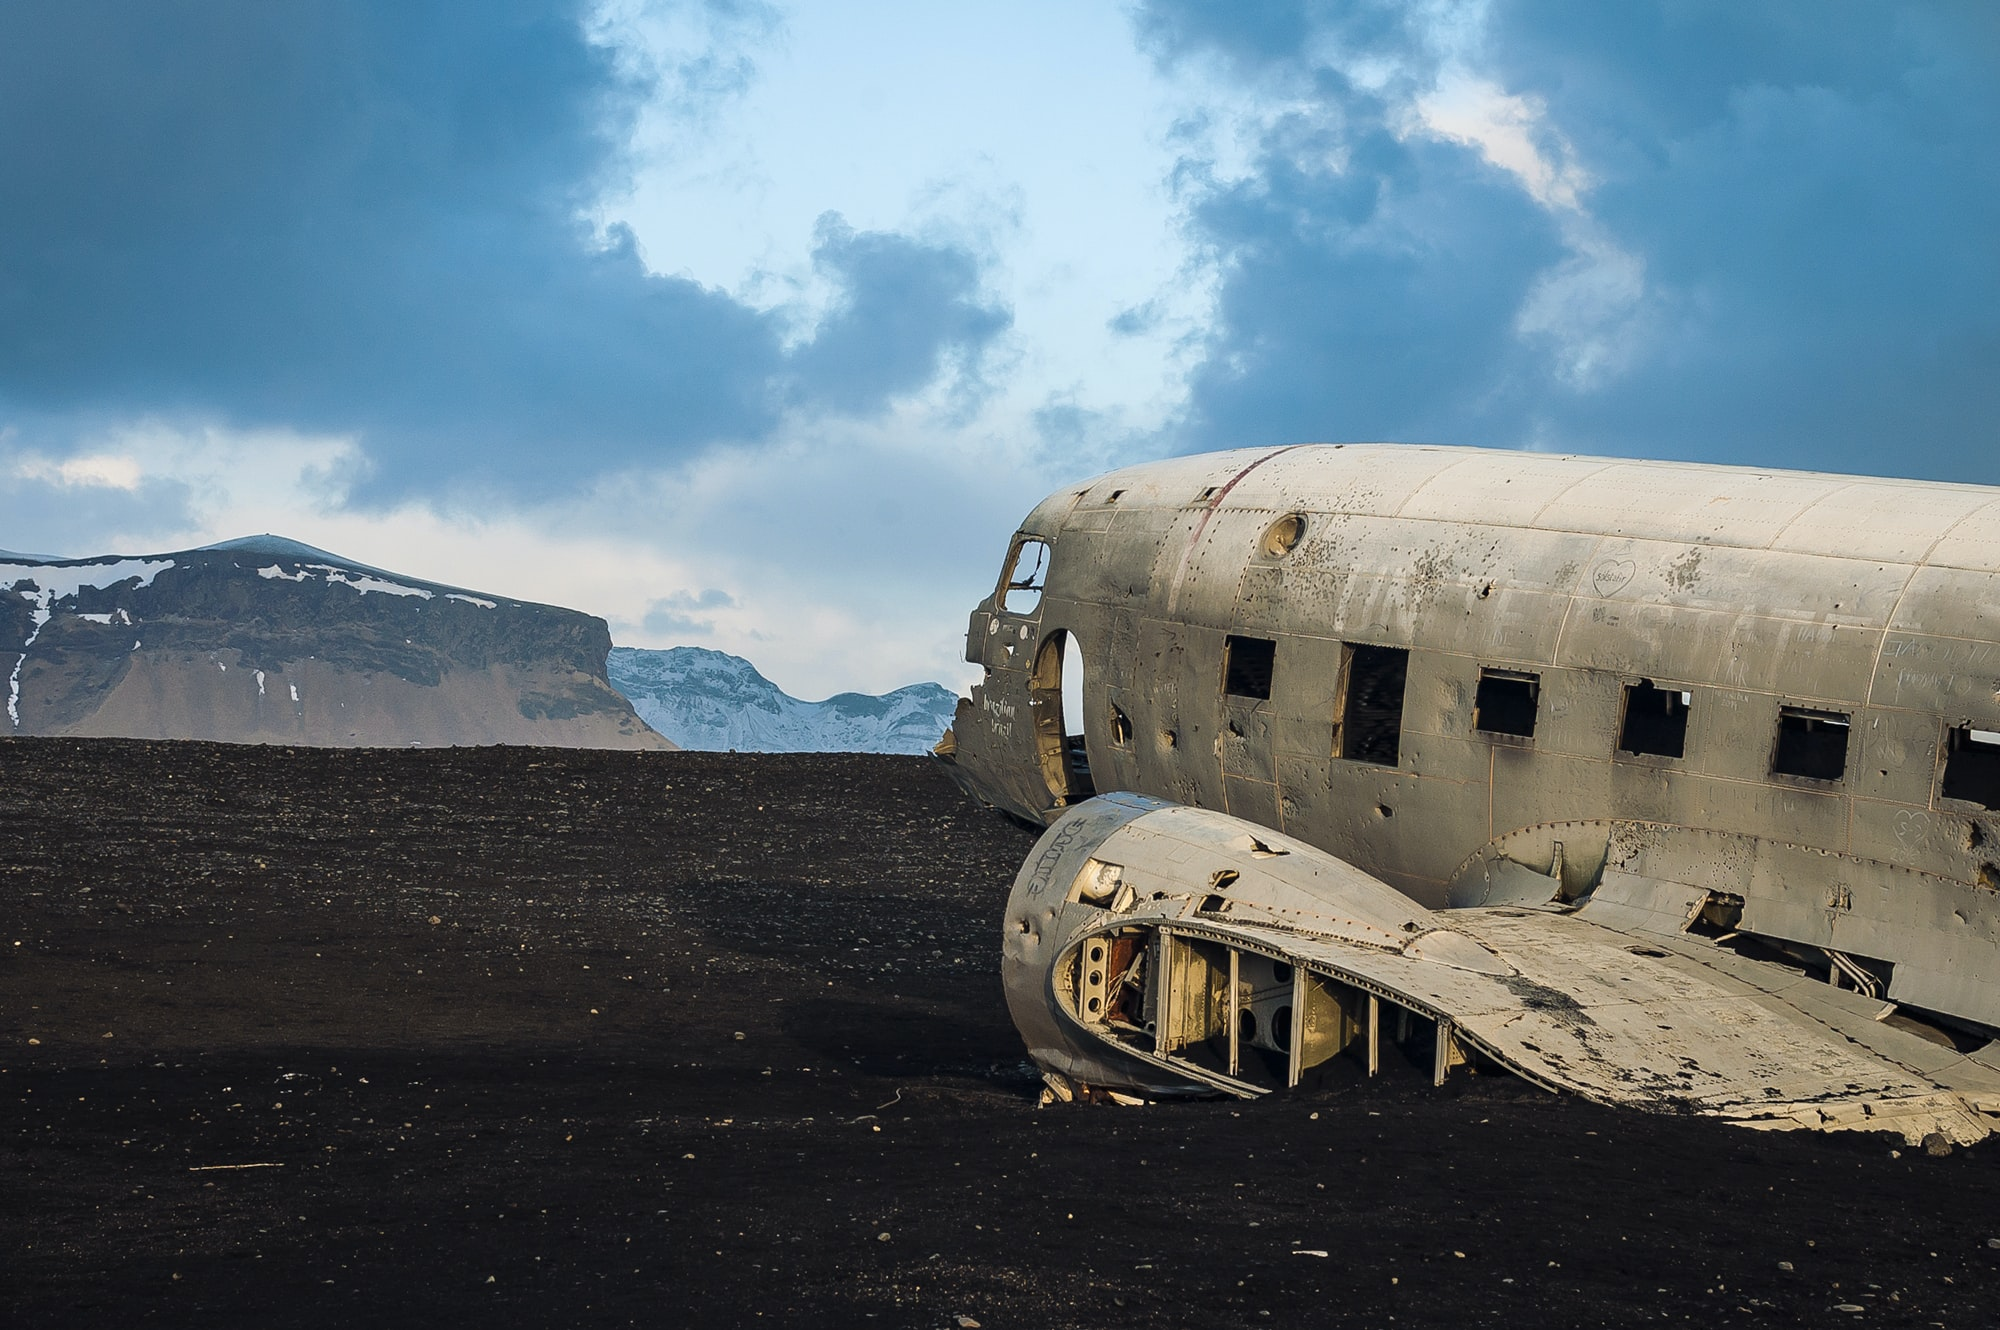 Abandoned airplane wreckage by a mountain landscape